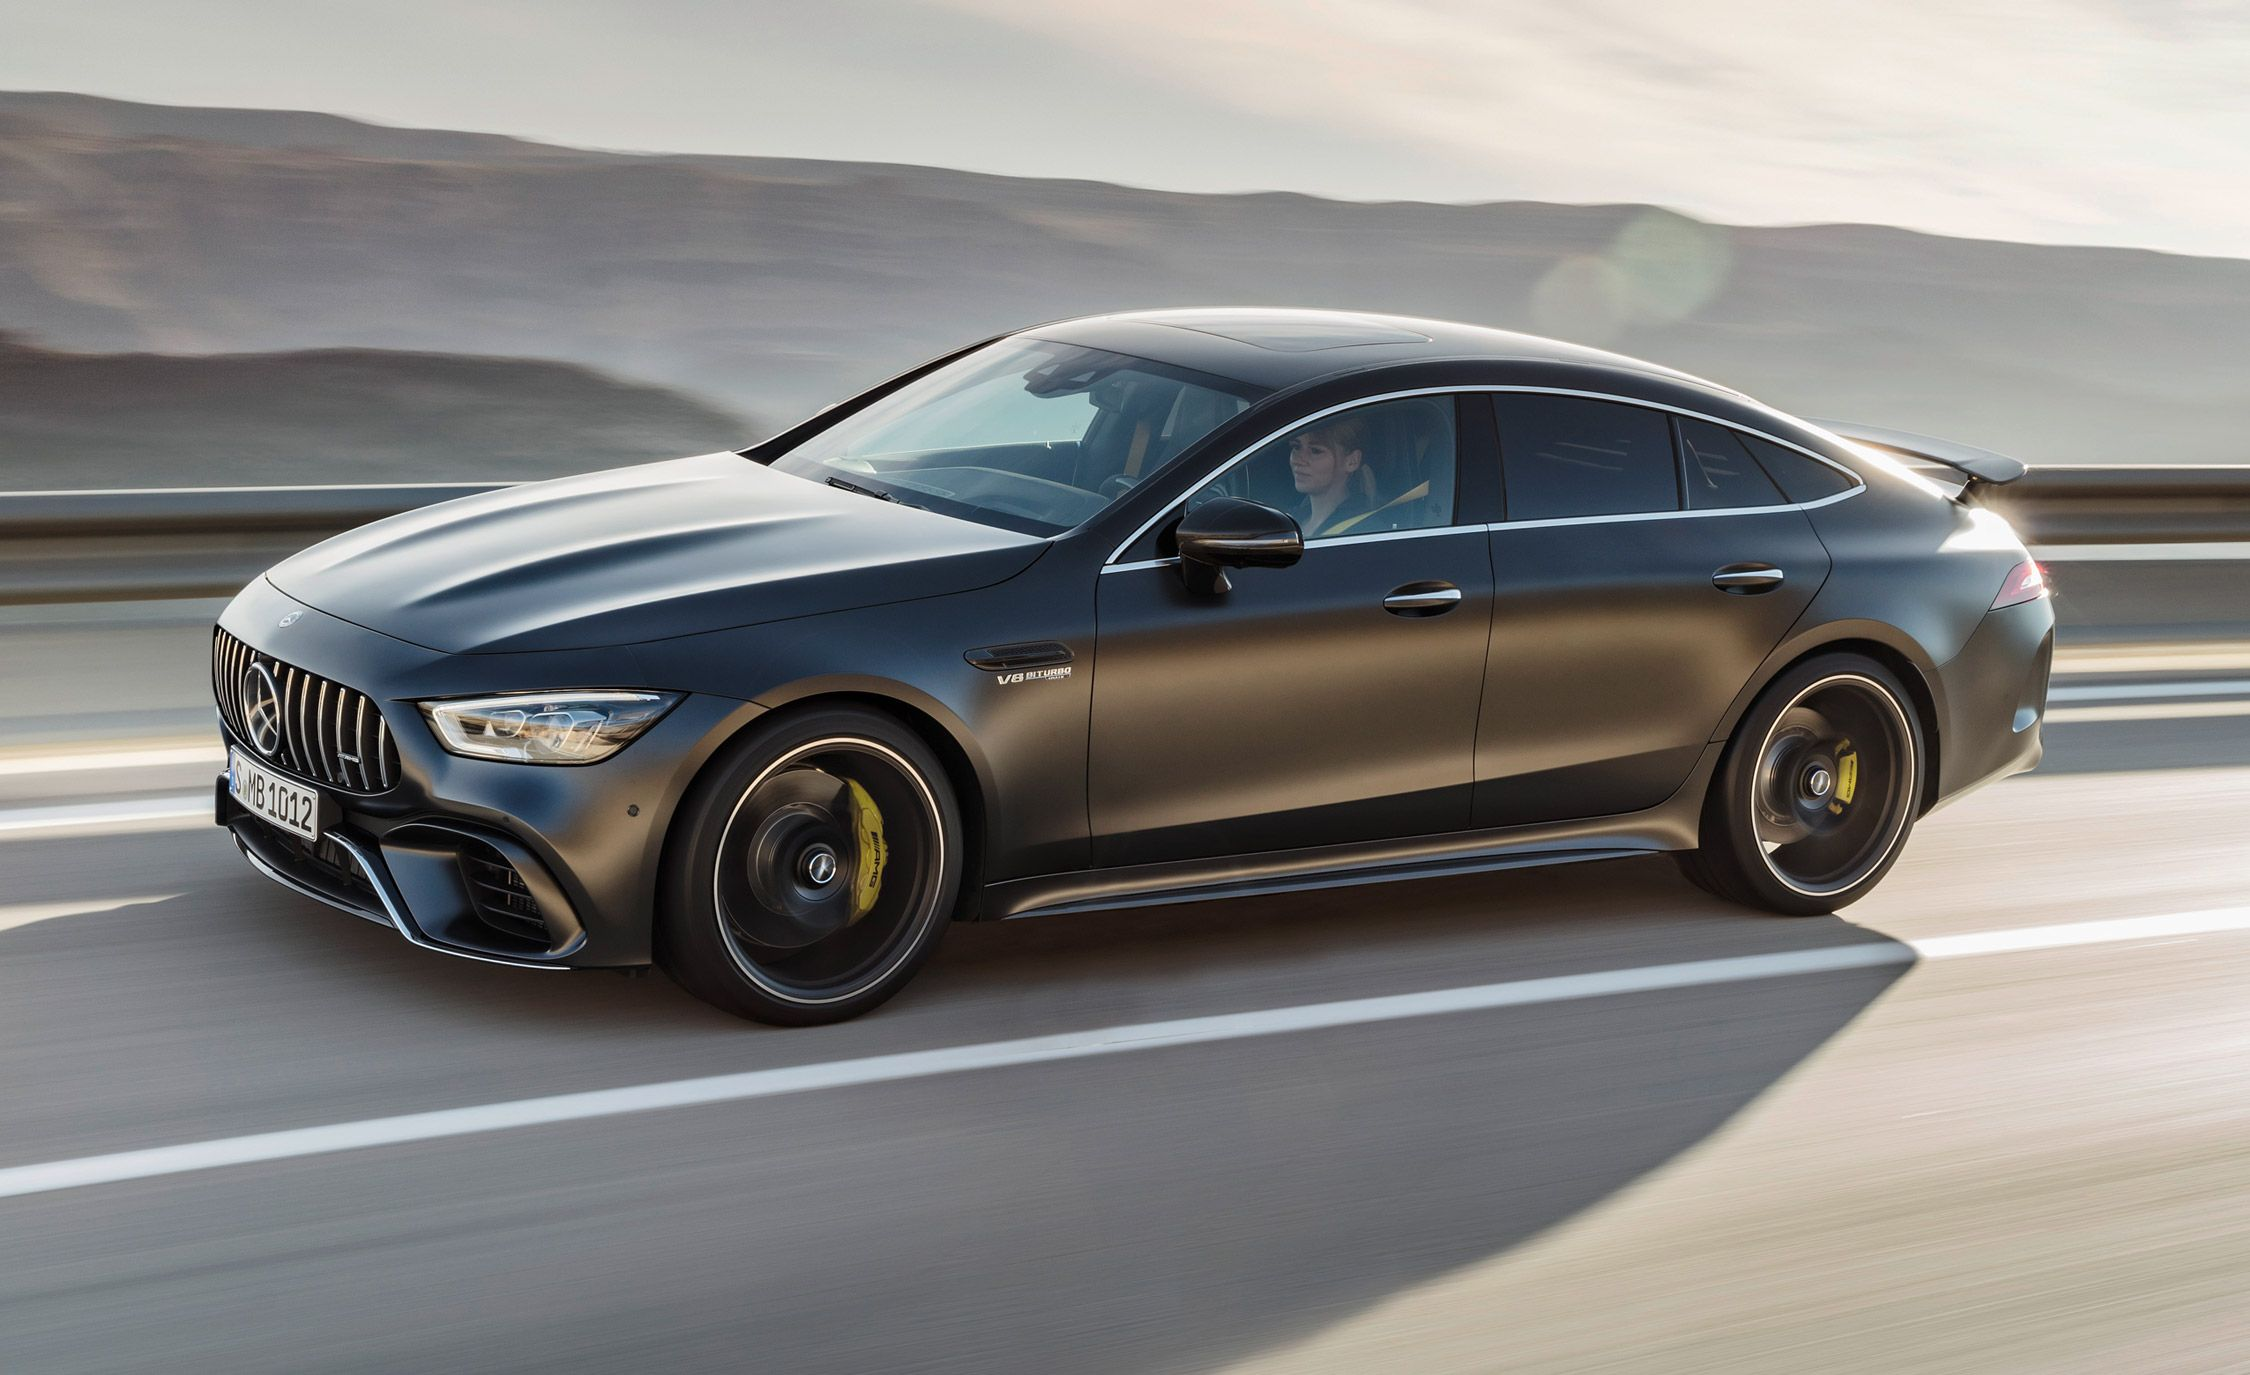 2019 Mercedes Amg Gt 4 Door Coupe A Pure Blooded Sports Sedan 25 Cars Worth Waiting For Car And Driver